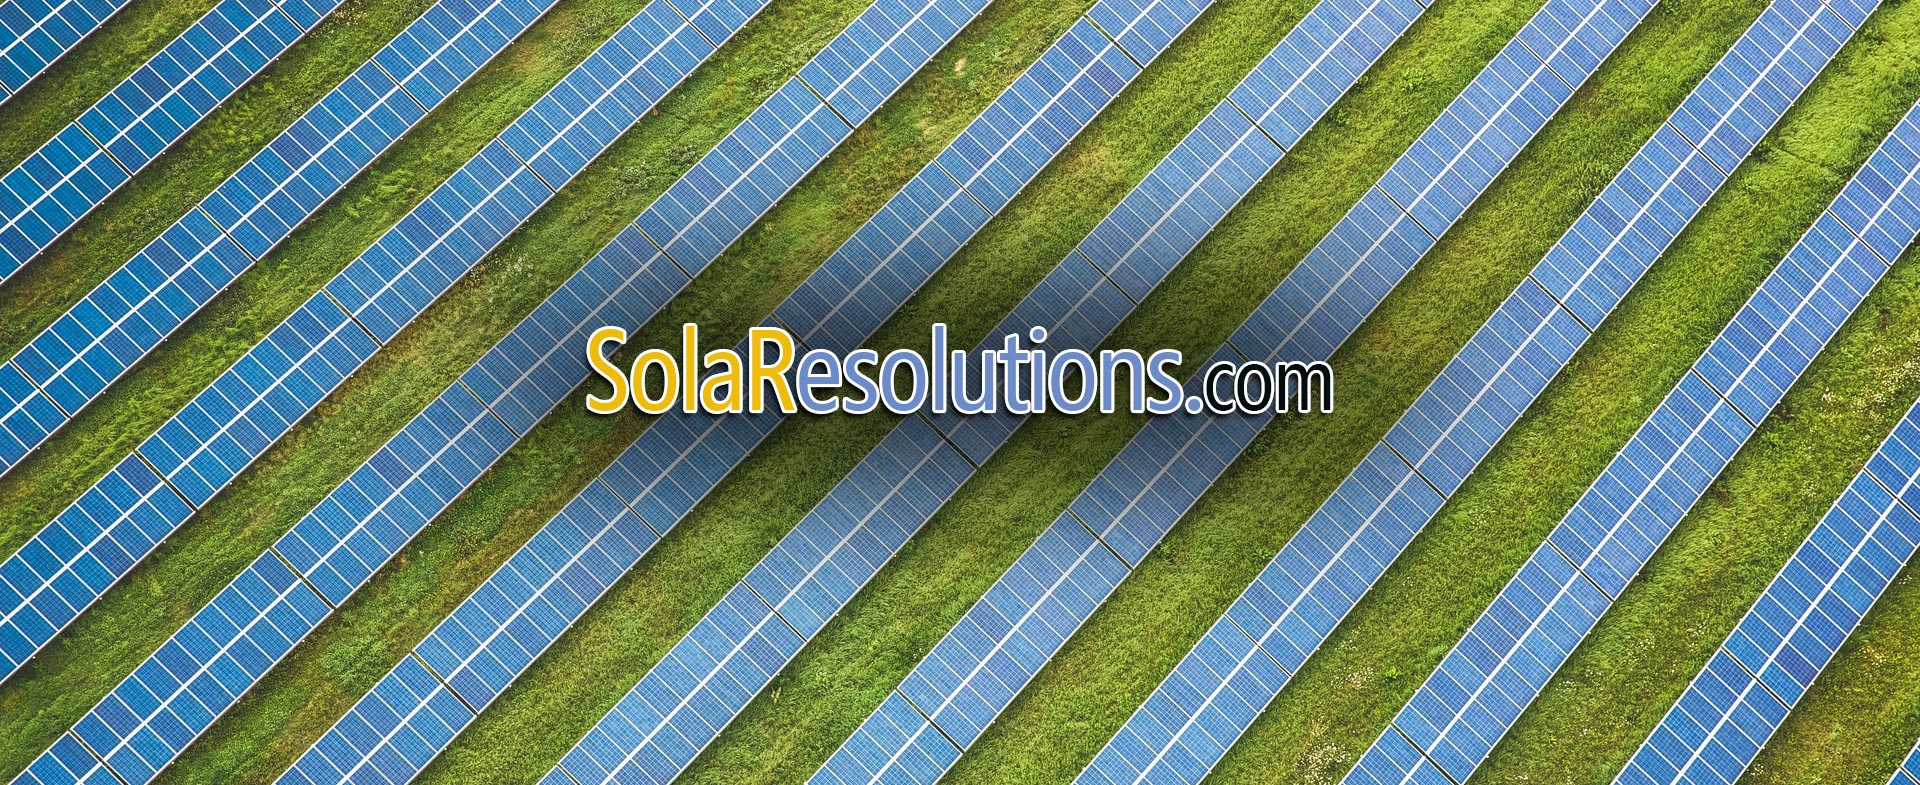 SolaResolutions.com domain for sale